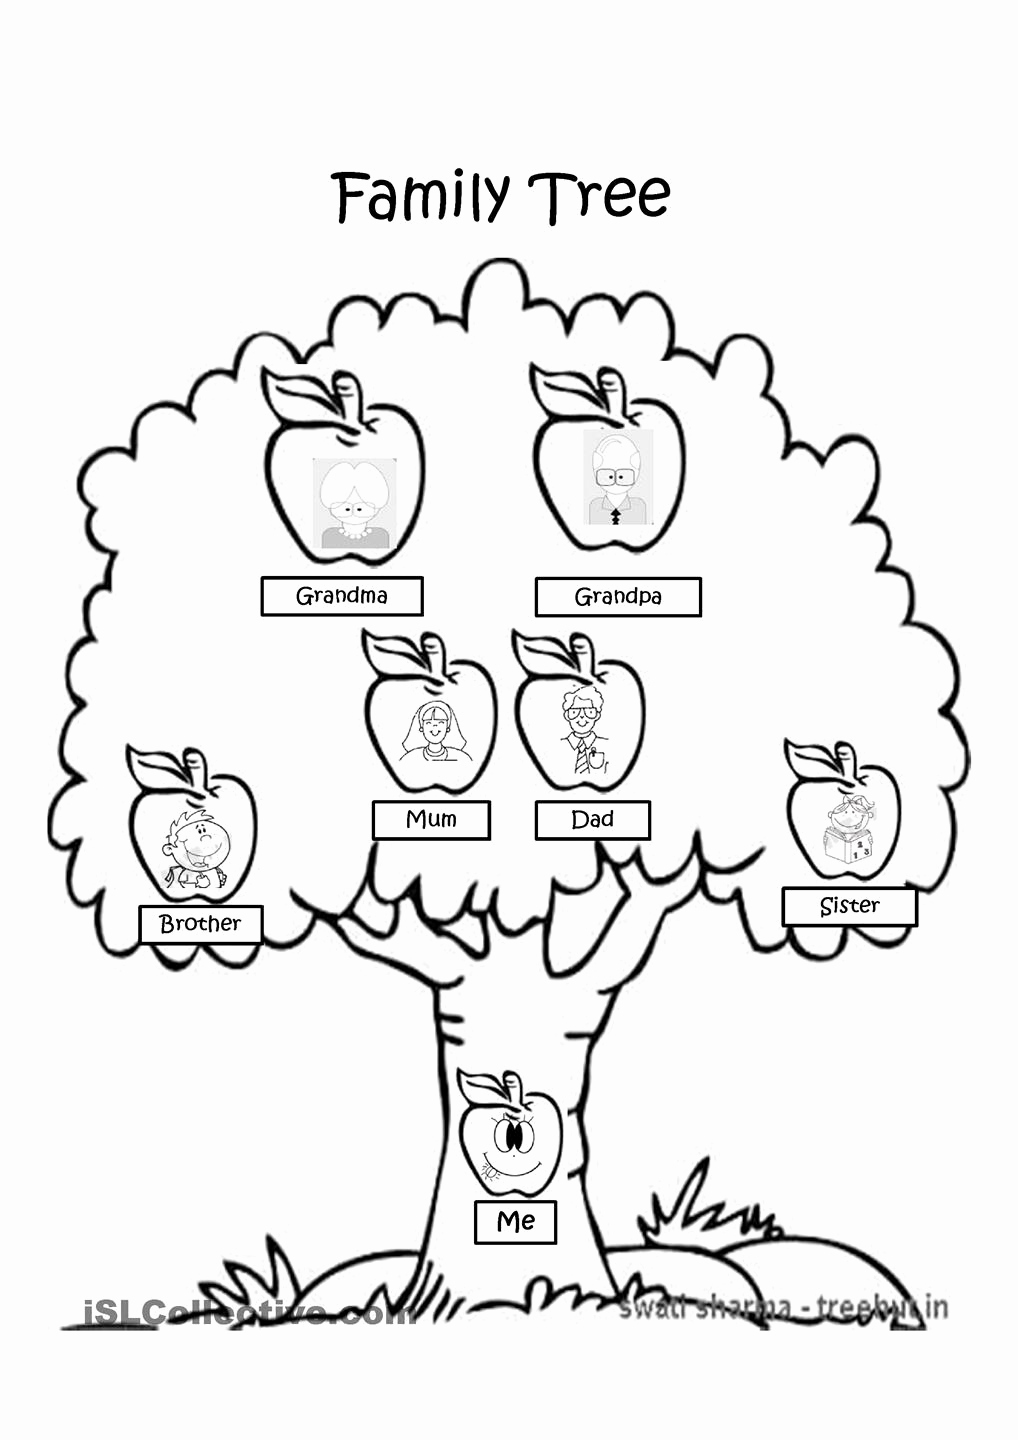 Family Tree Worksheets for Kids Lovely Family Tree Drawing Easy at Getdrawings